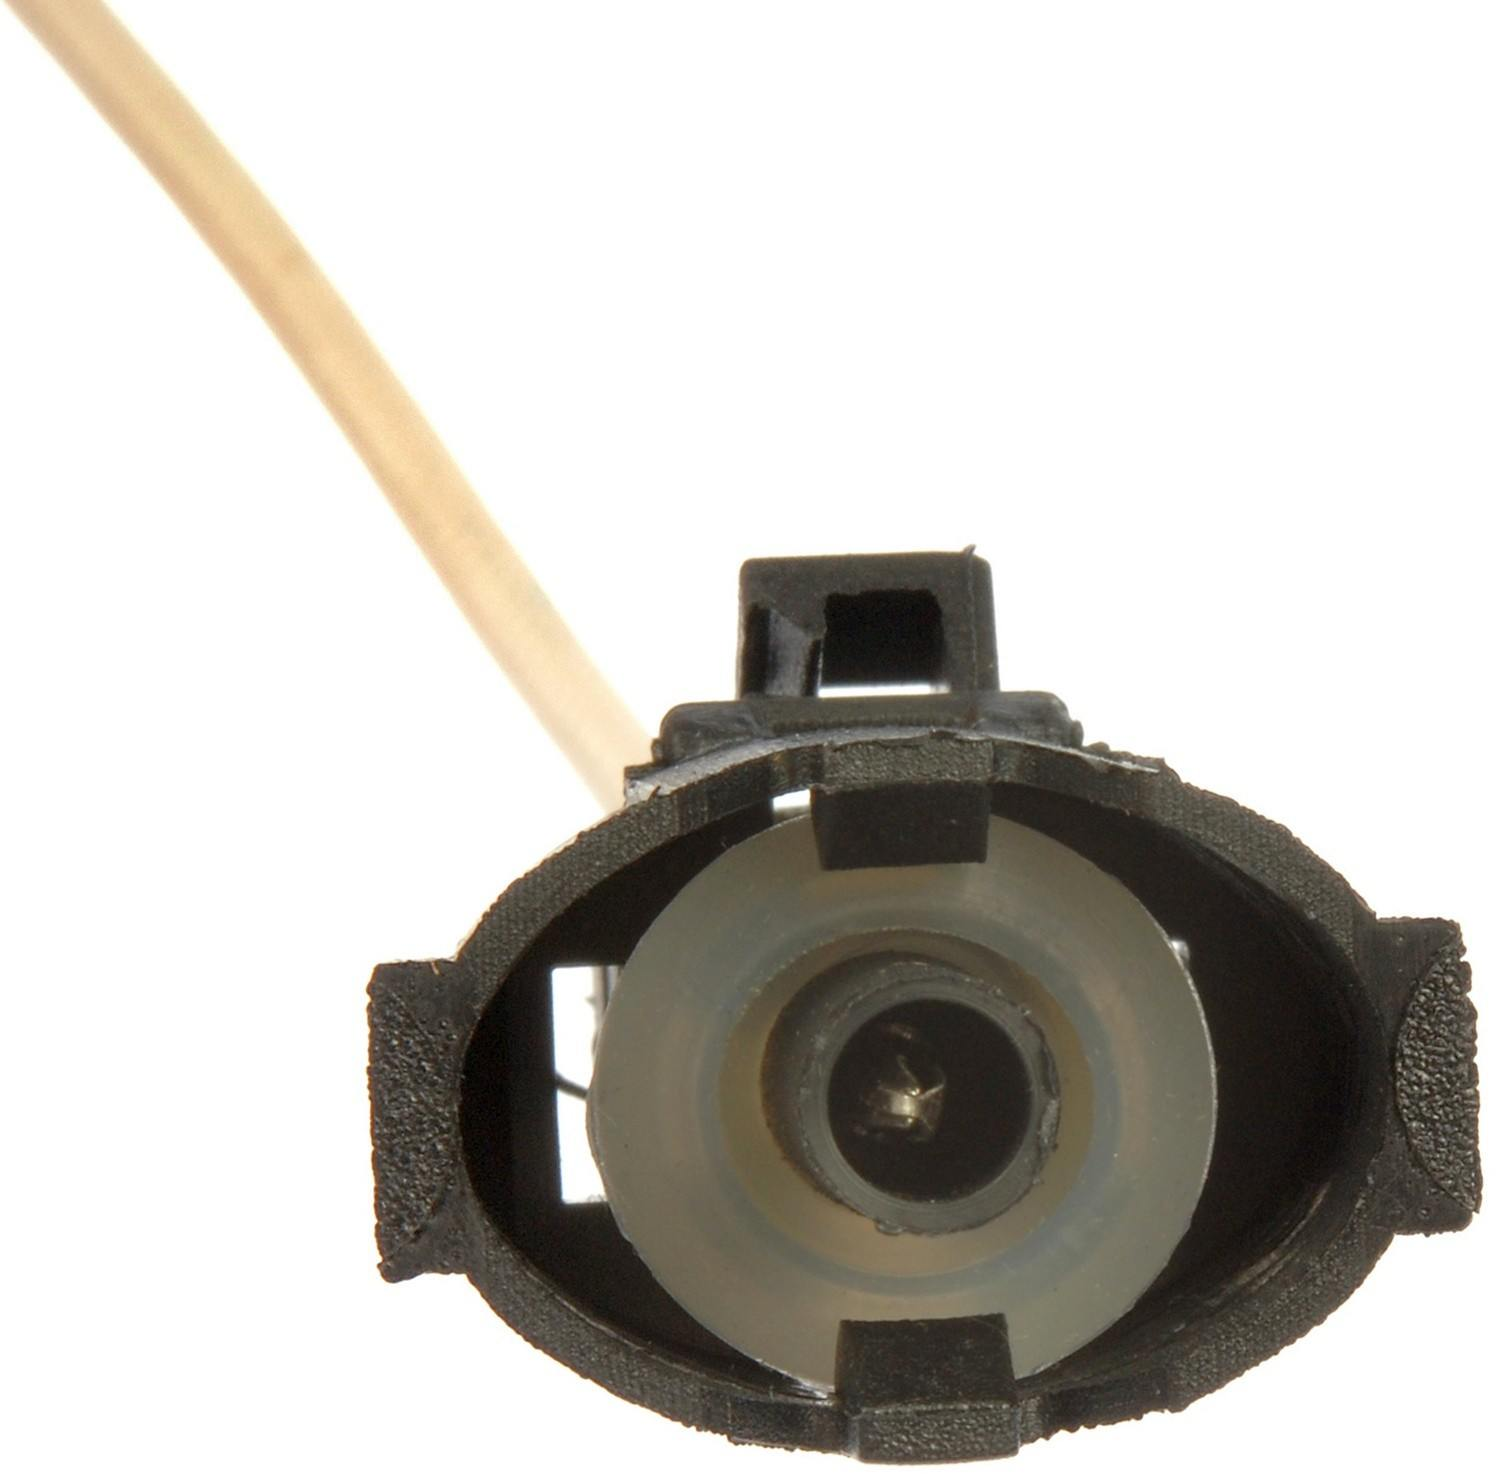 DORMAN - CONDUCT-TITE - Engine Coolant Temperature Sensor Connector - DCT 85140